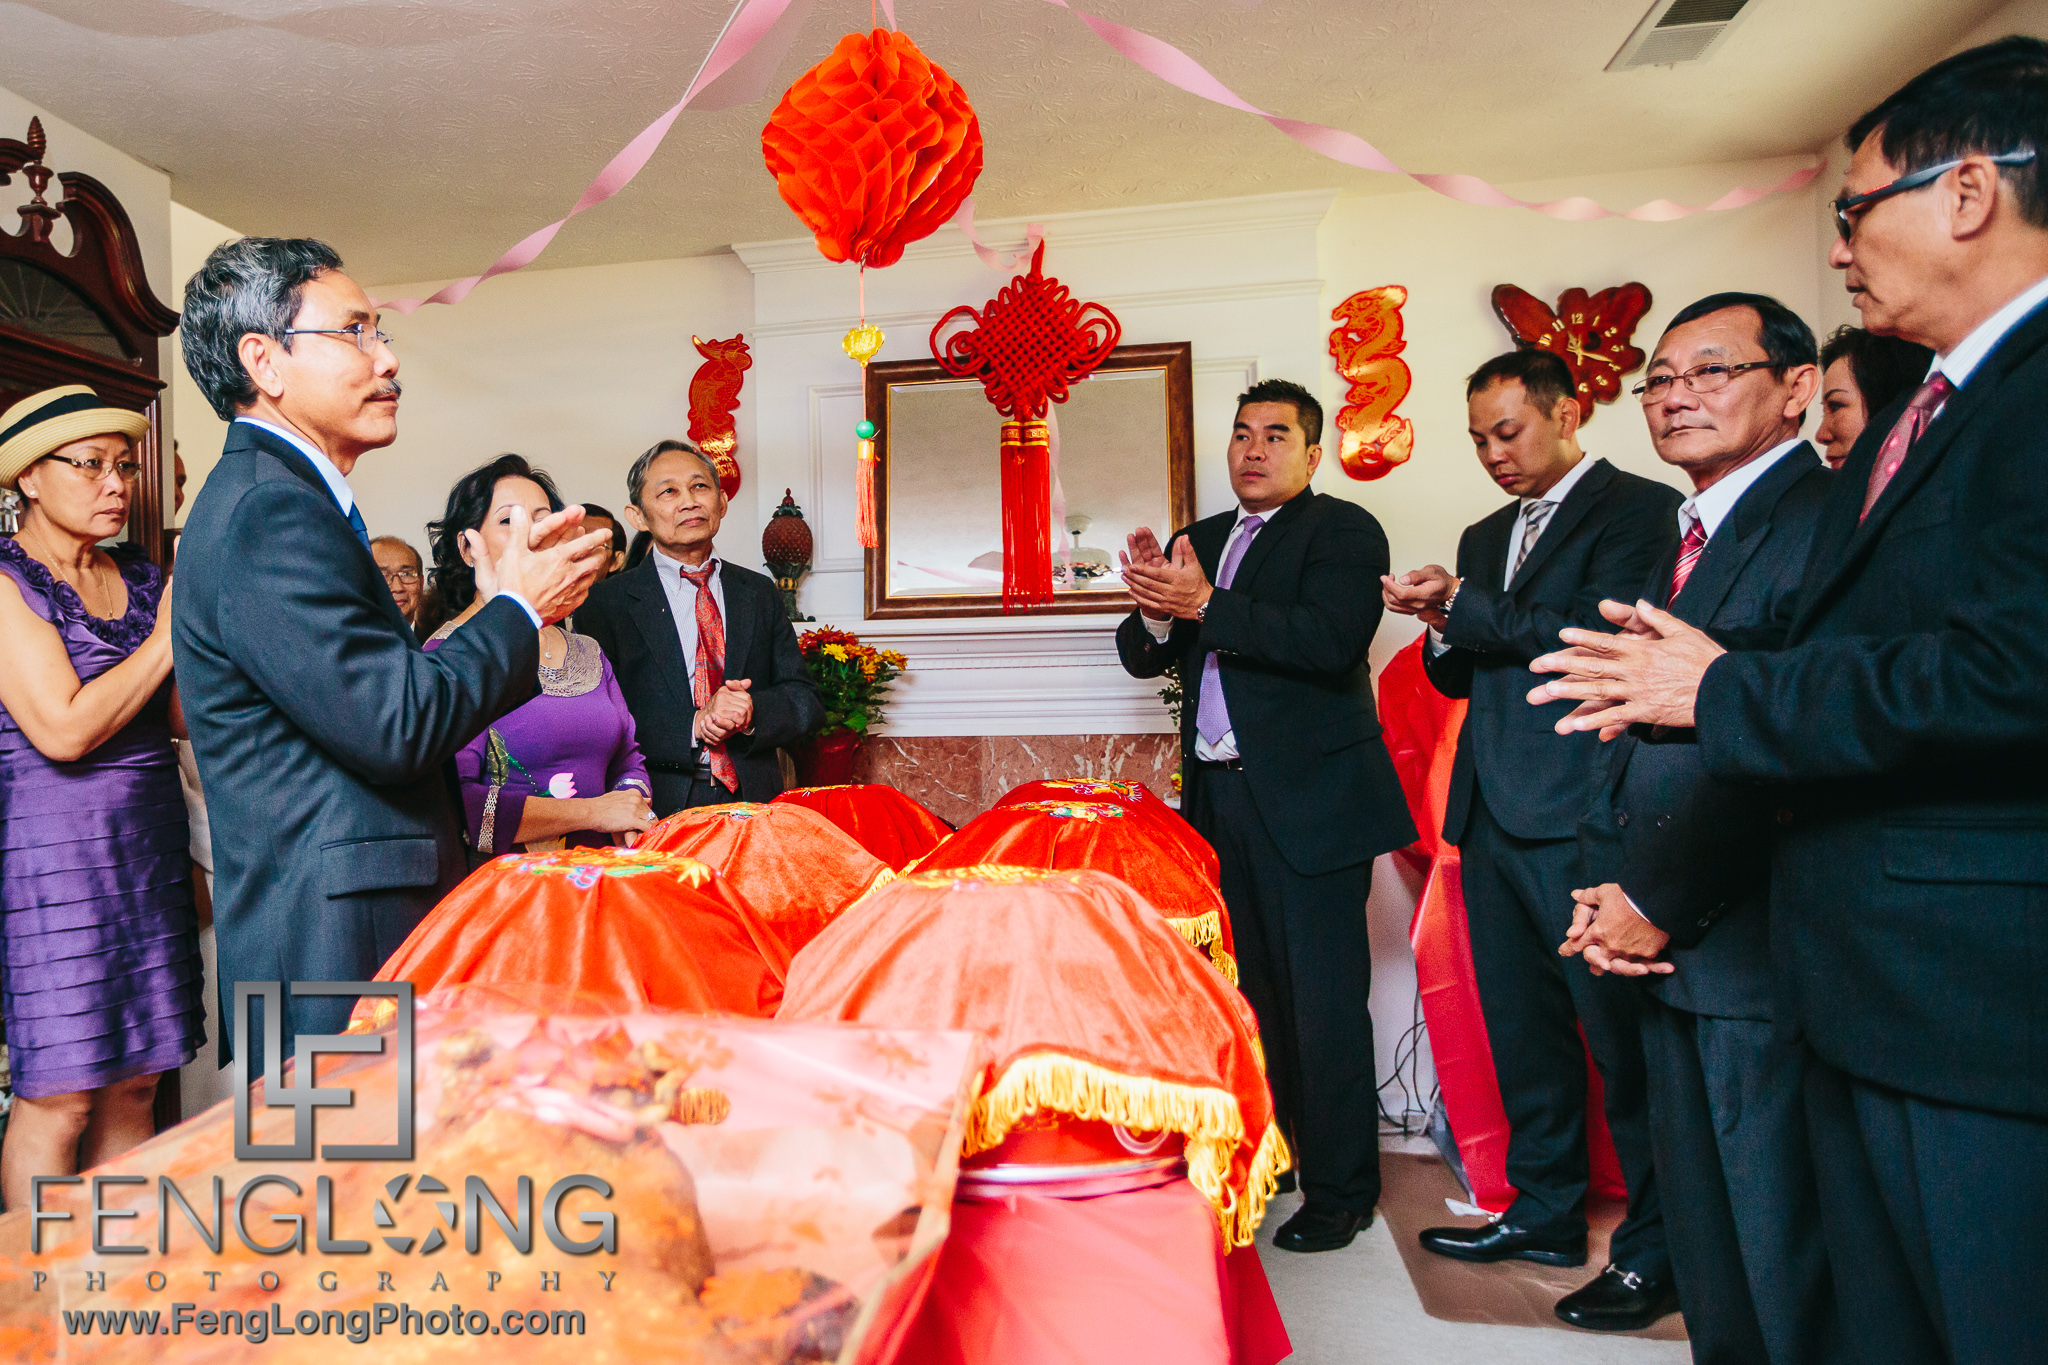 vietnamese wedding ceremony The wedding consists of several ceremonies including asking permission to receive the bride, the procession to receive the bride, the procession to the groom's house, the second ancestor ceremony, and the banquet party.